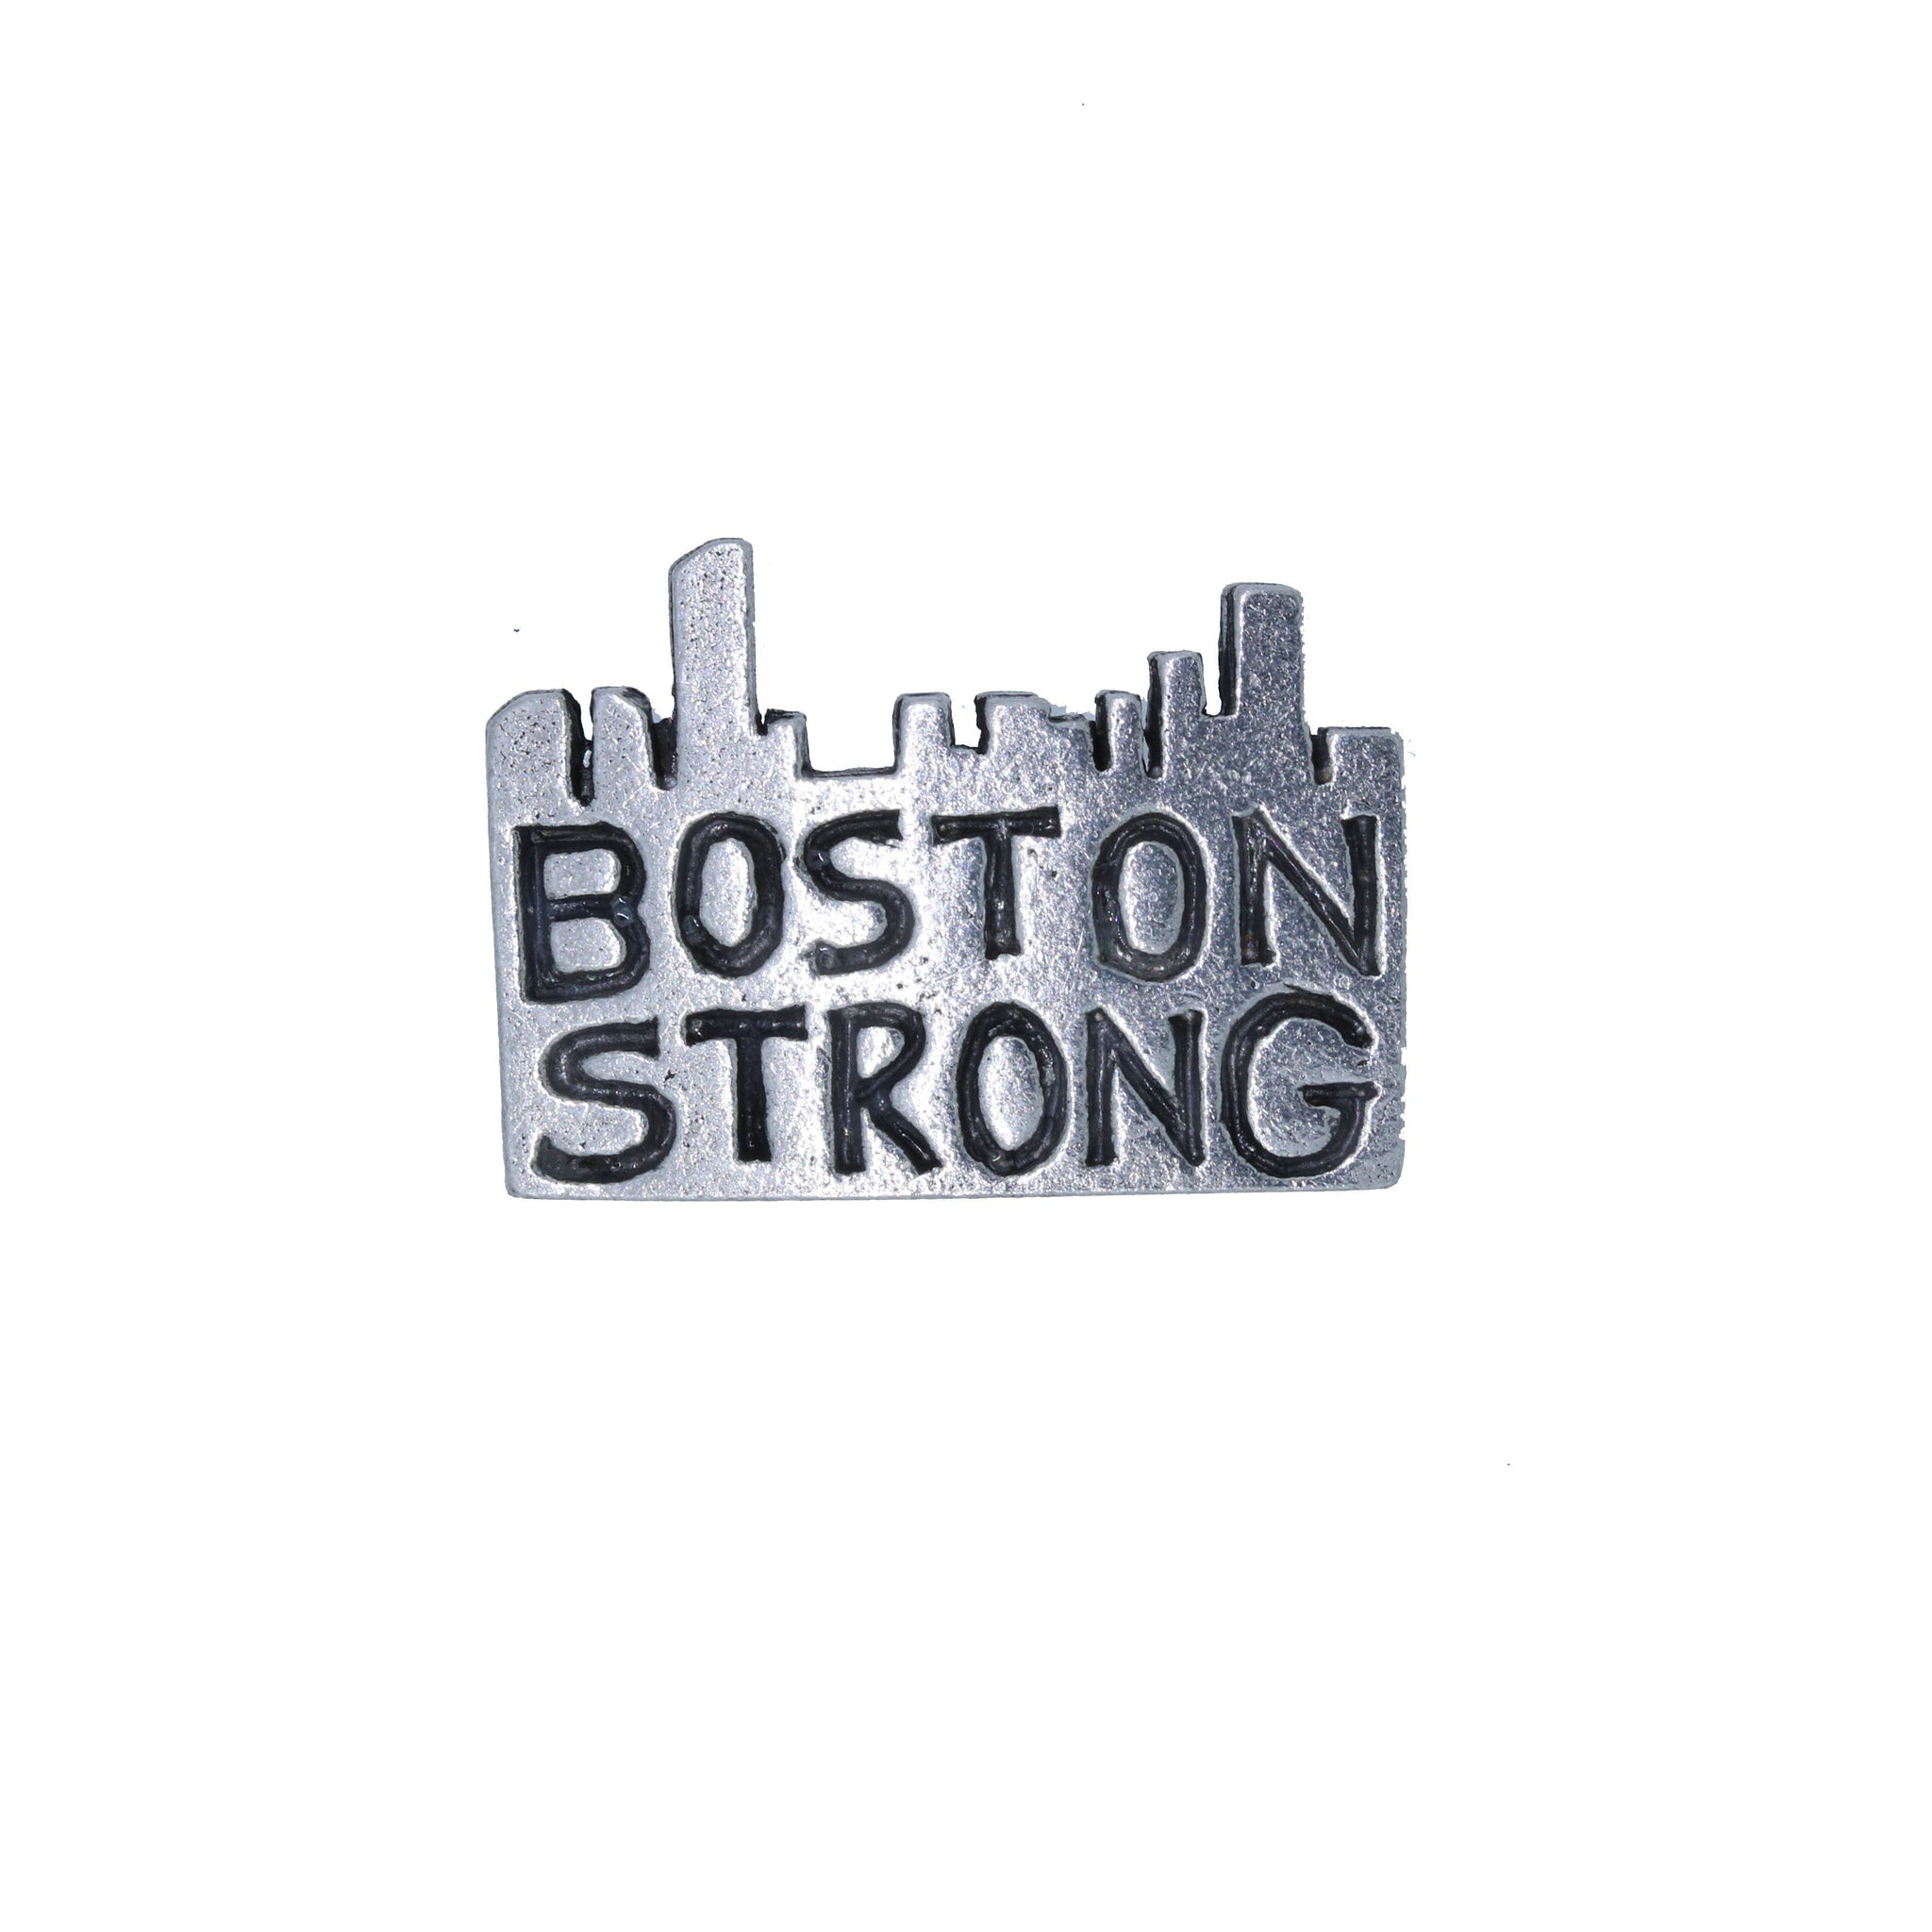 Boston Strong Lapel Pin